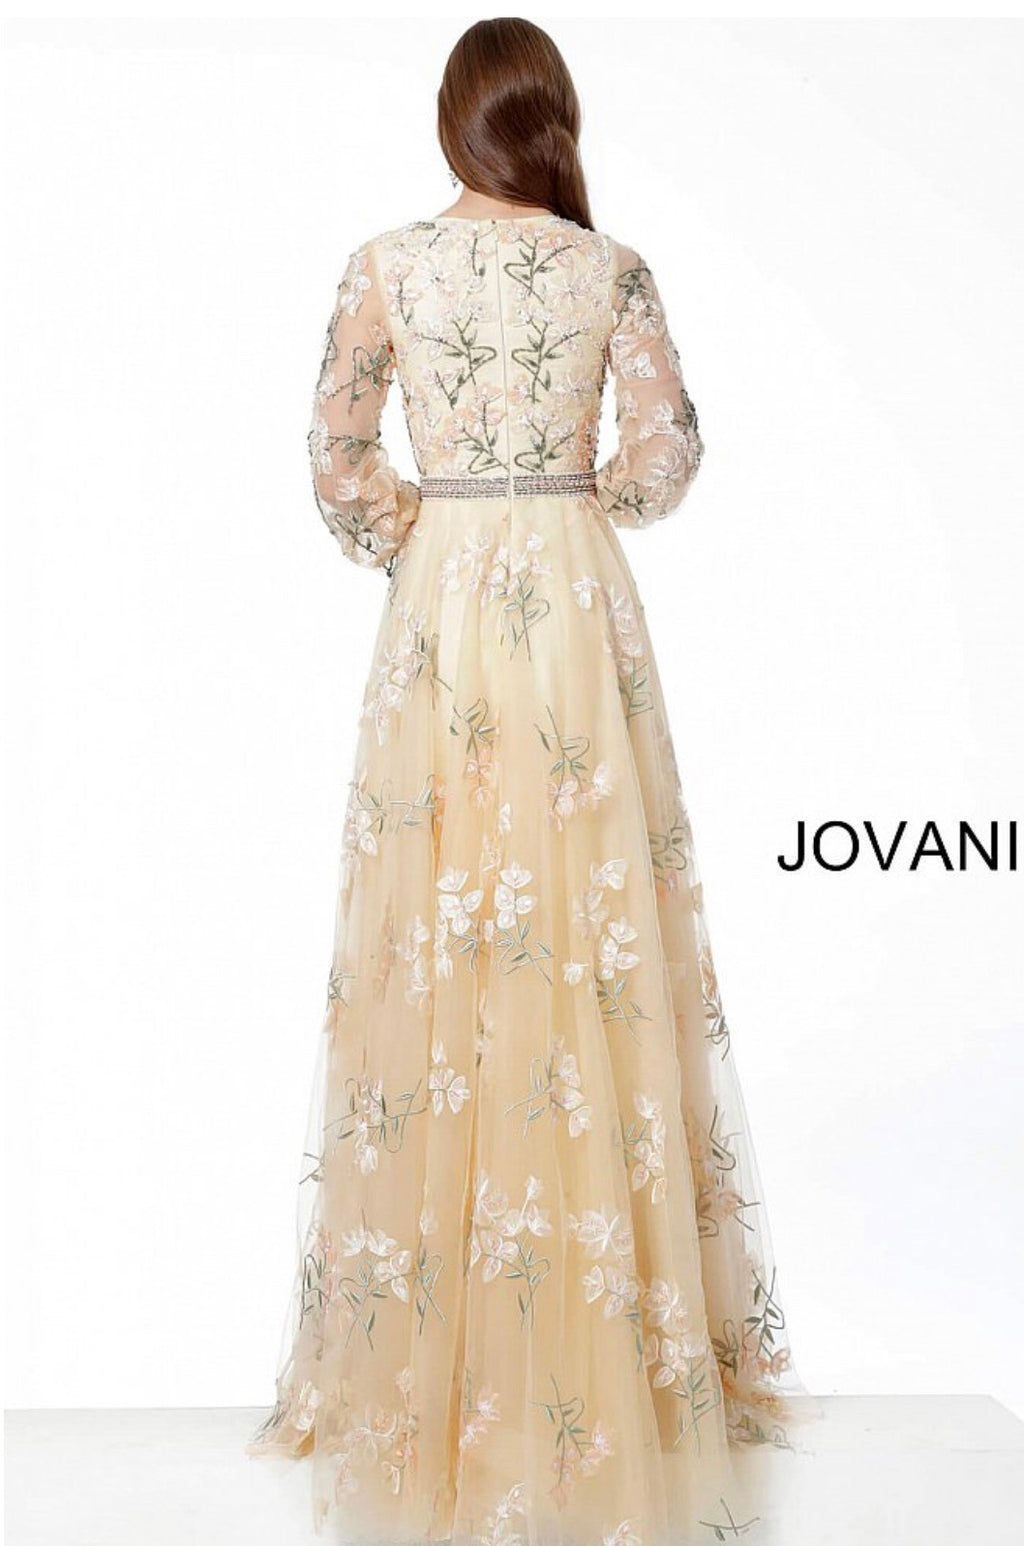 JOVANI 65637 Embroidered Long Sleeve Maxi Dress - CYC Boutique